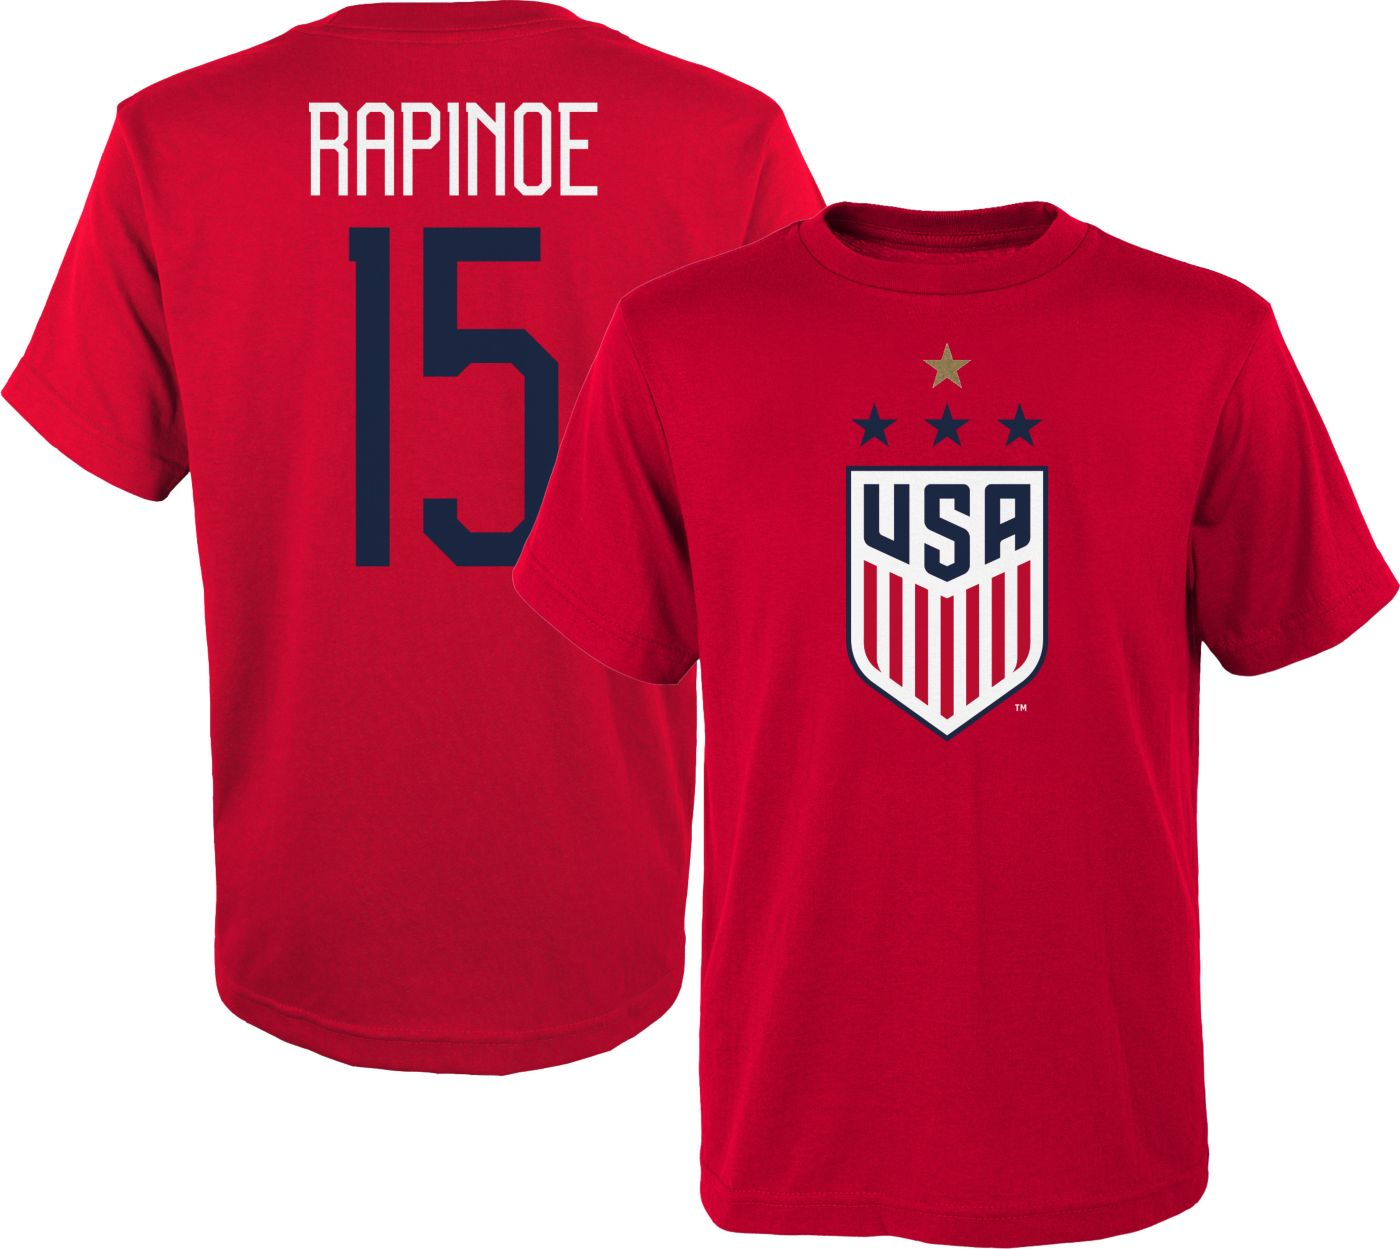 Outerstuff Youth USA Soccer Megan Rapinoe #15 4-Star Player Red T-Shirt